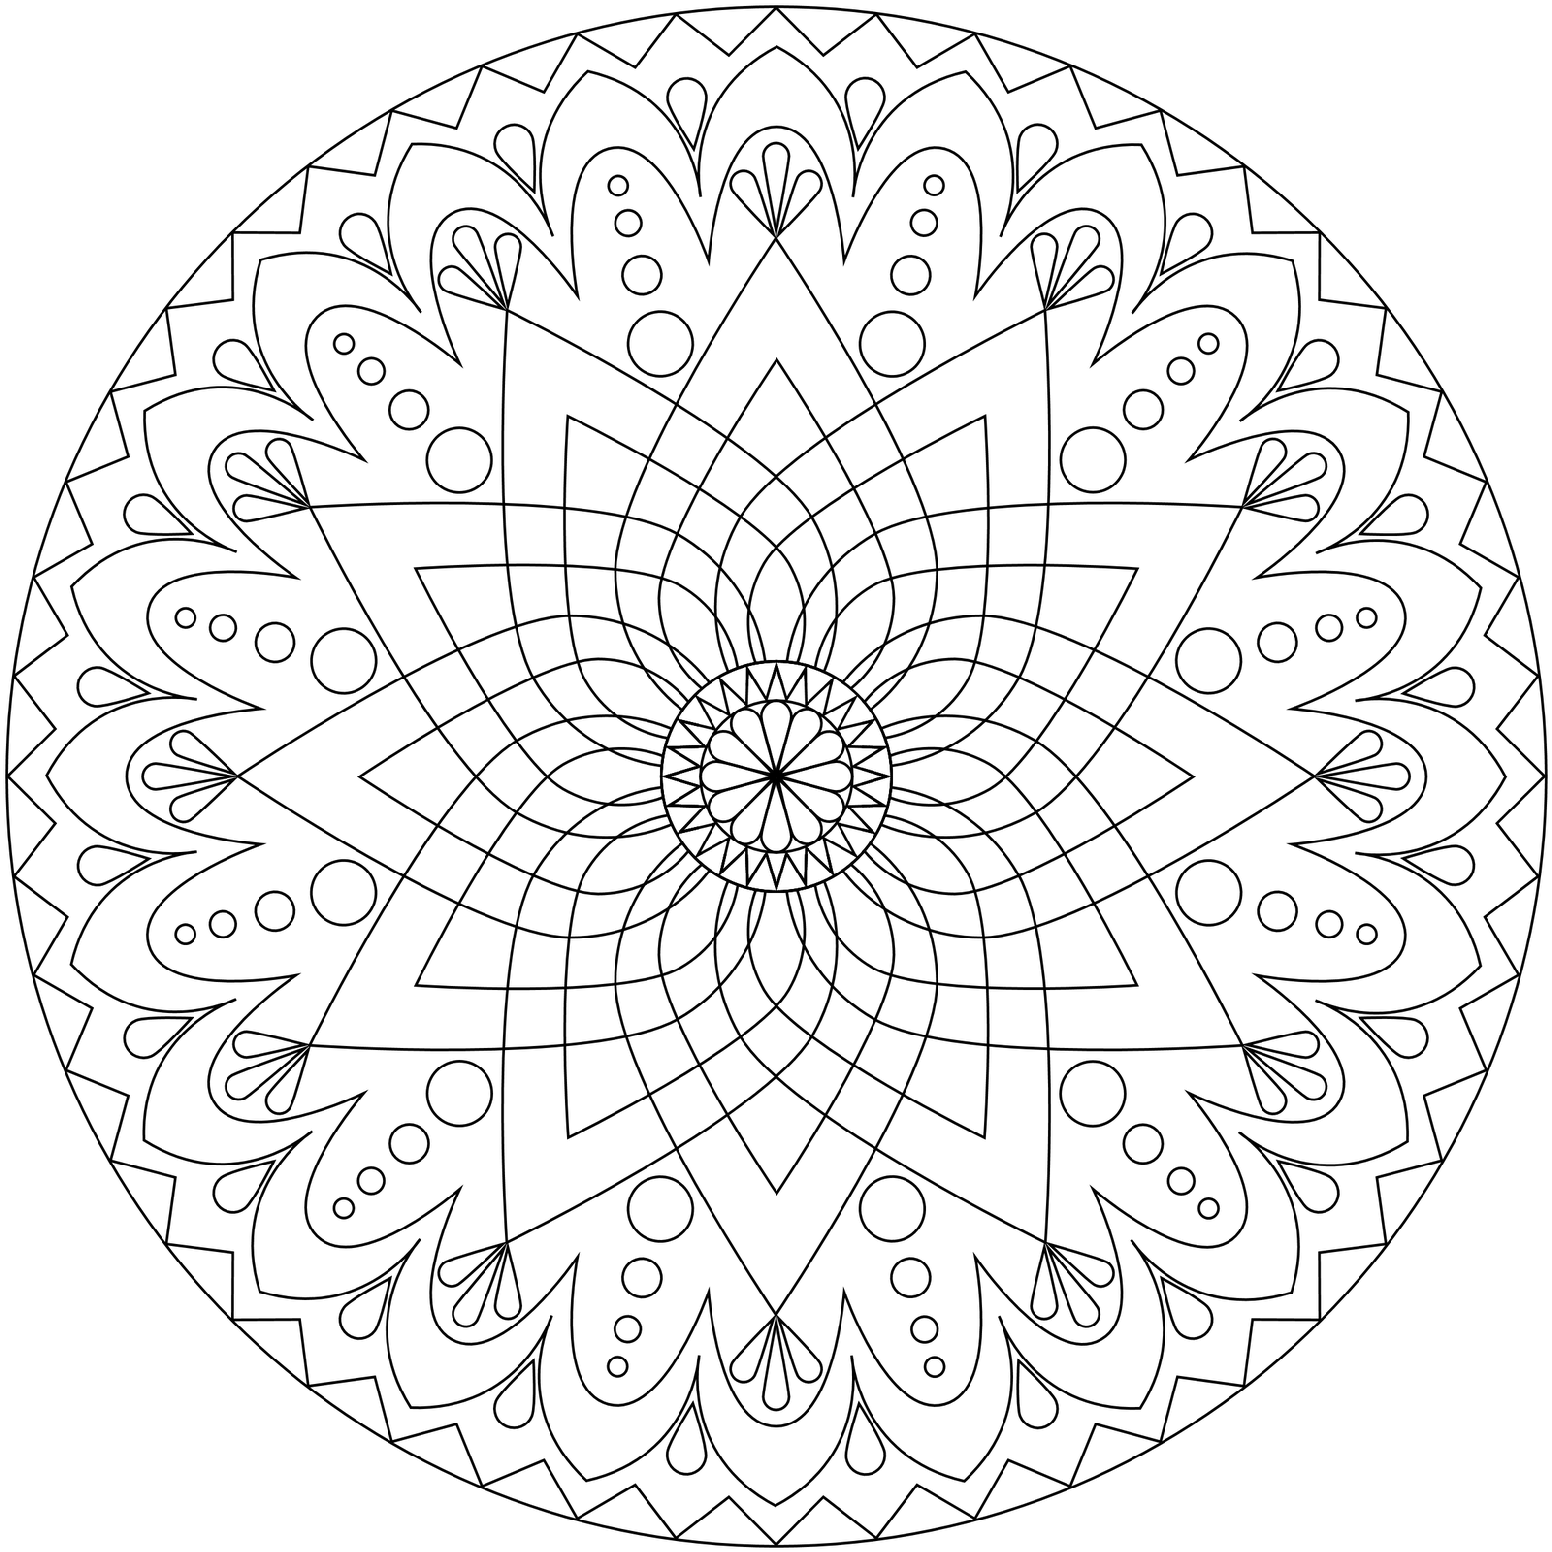 Free Mandala Coloring Pages For Adults - Coloring Home | mandala coloring pages for adults online